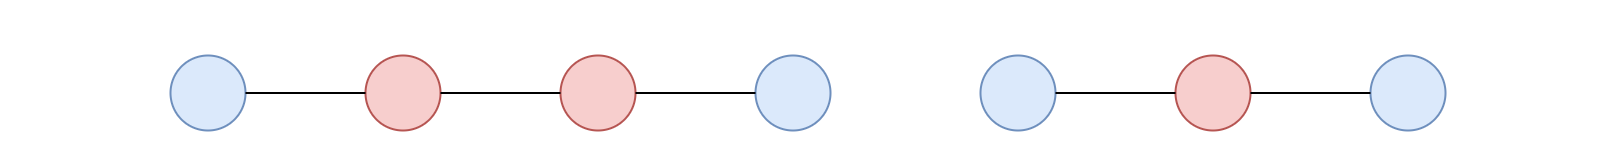 example of centroids